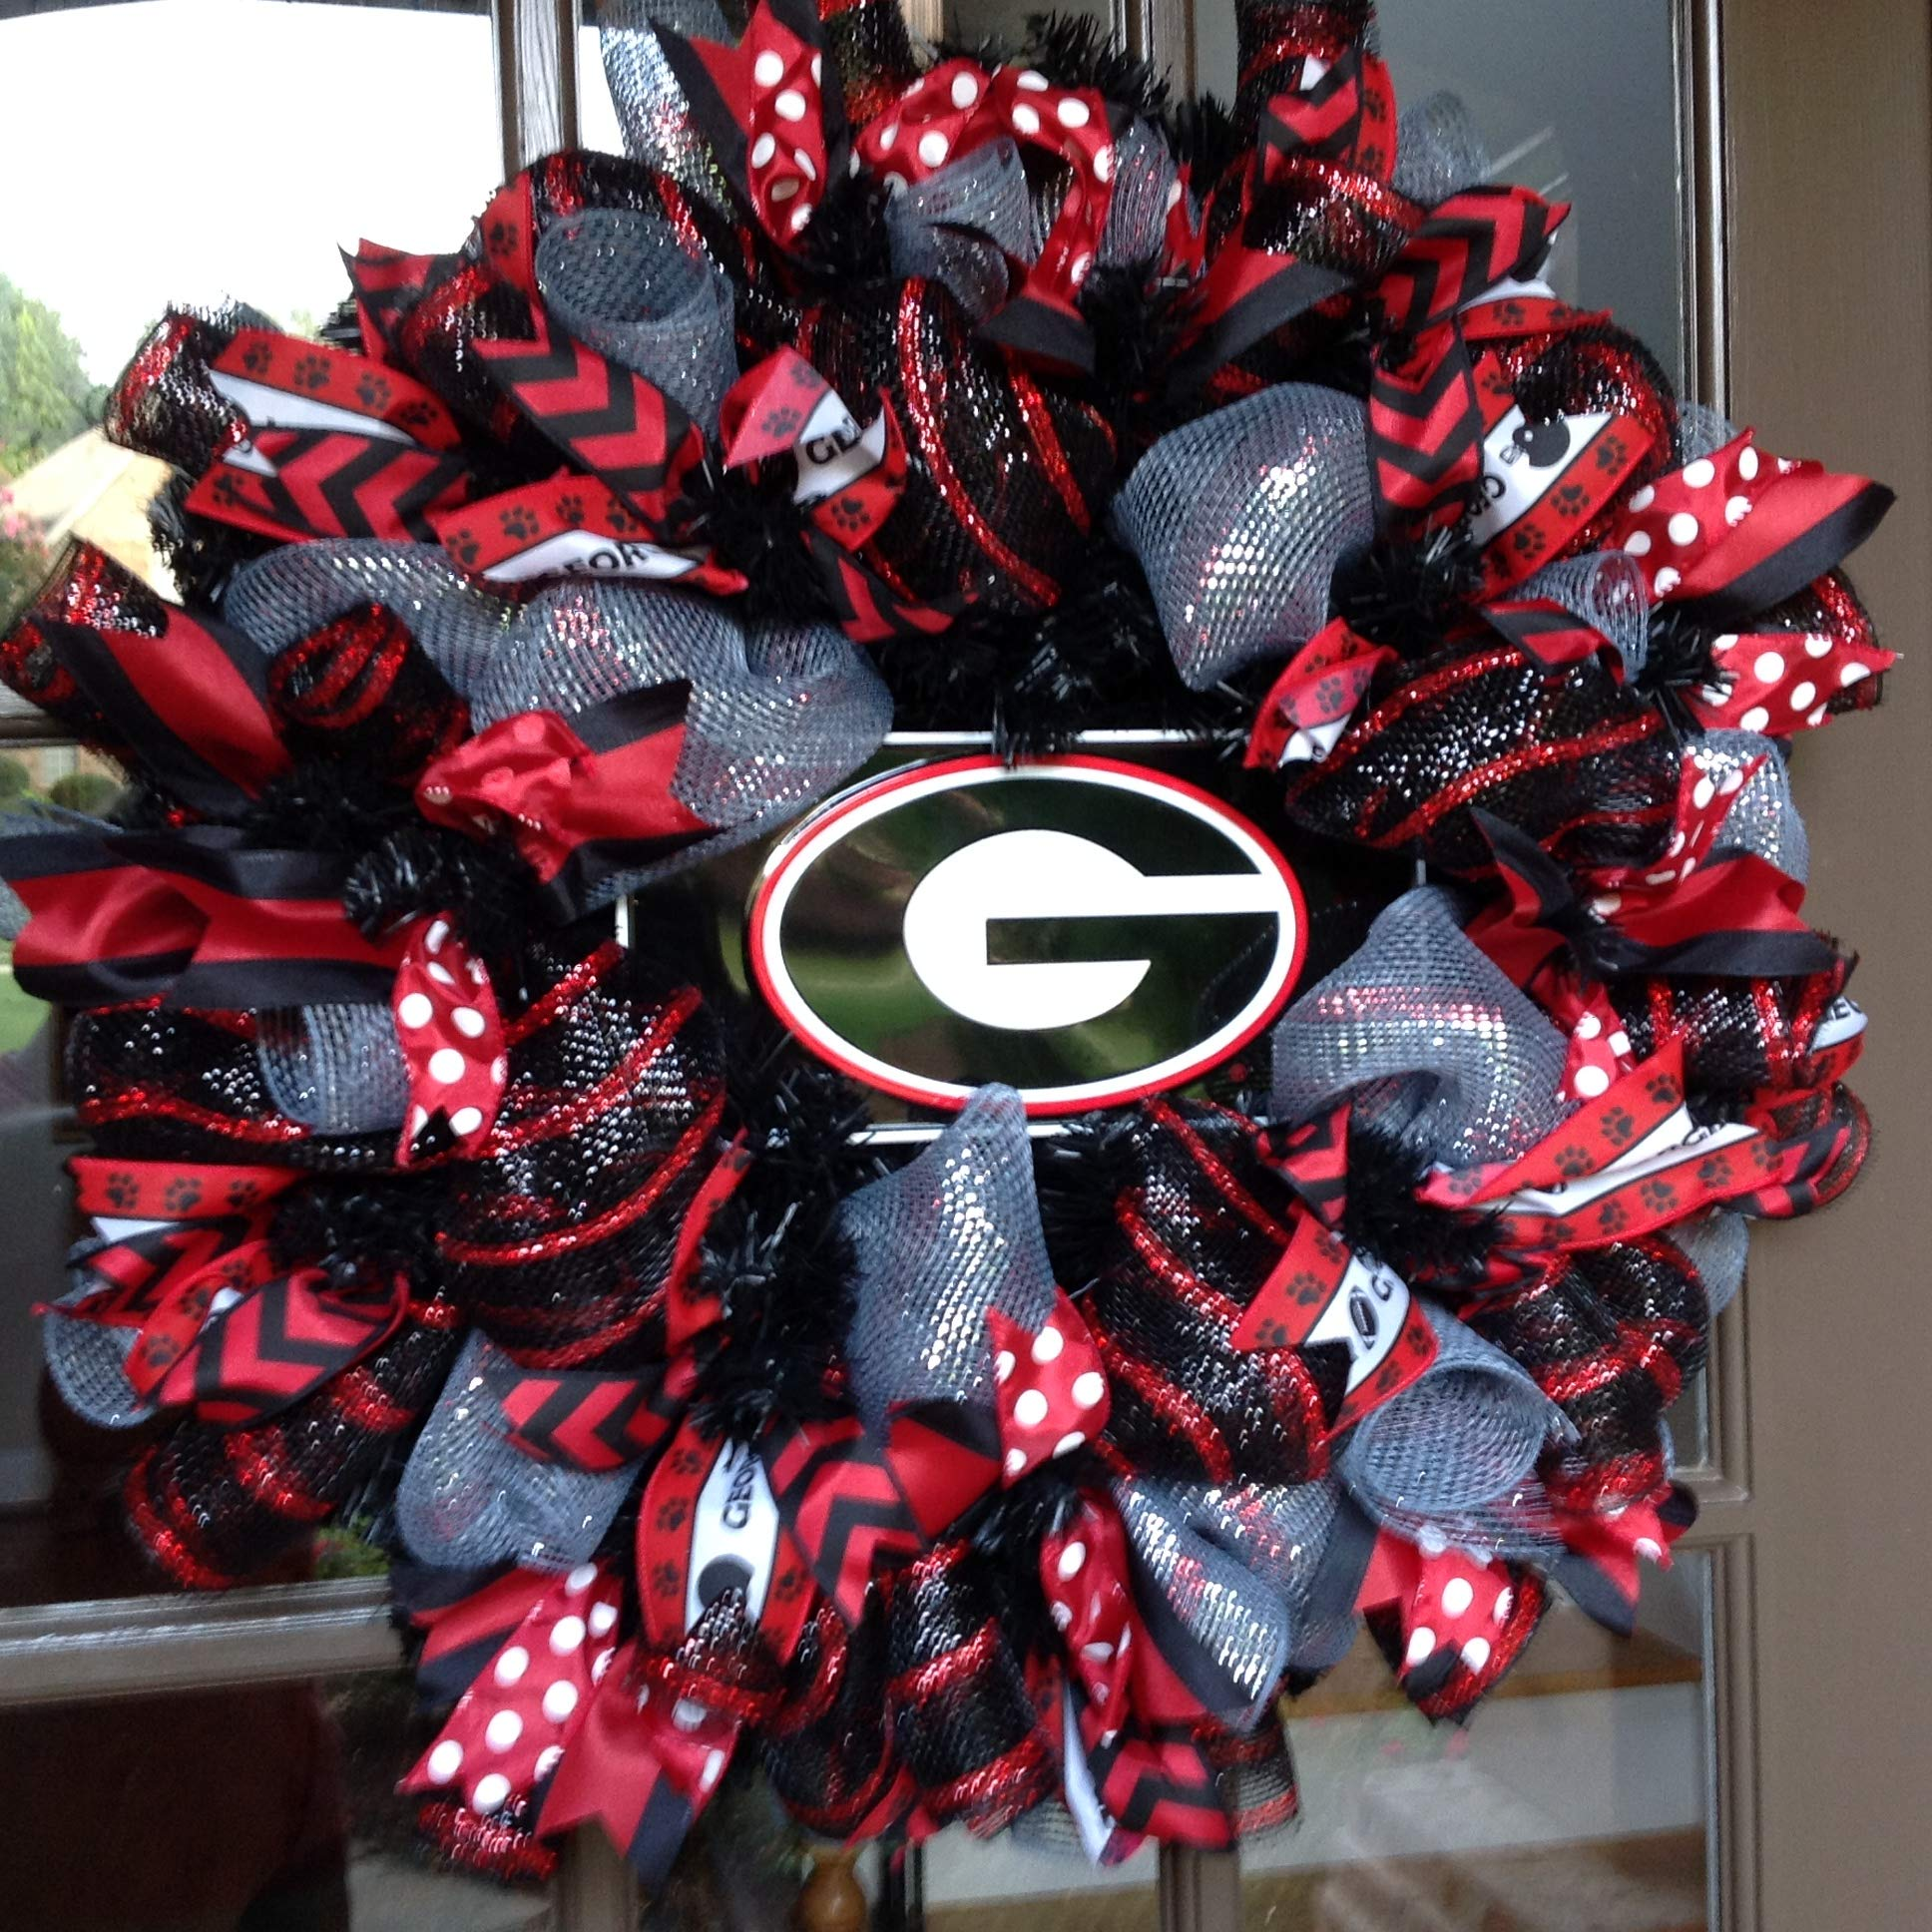 Flora Decor UGA Collegiate Wreaths with License Plate -26''